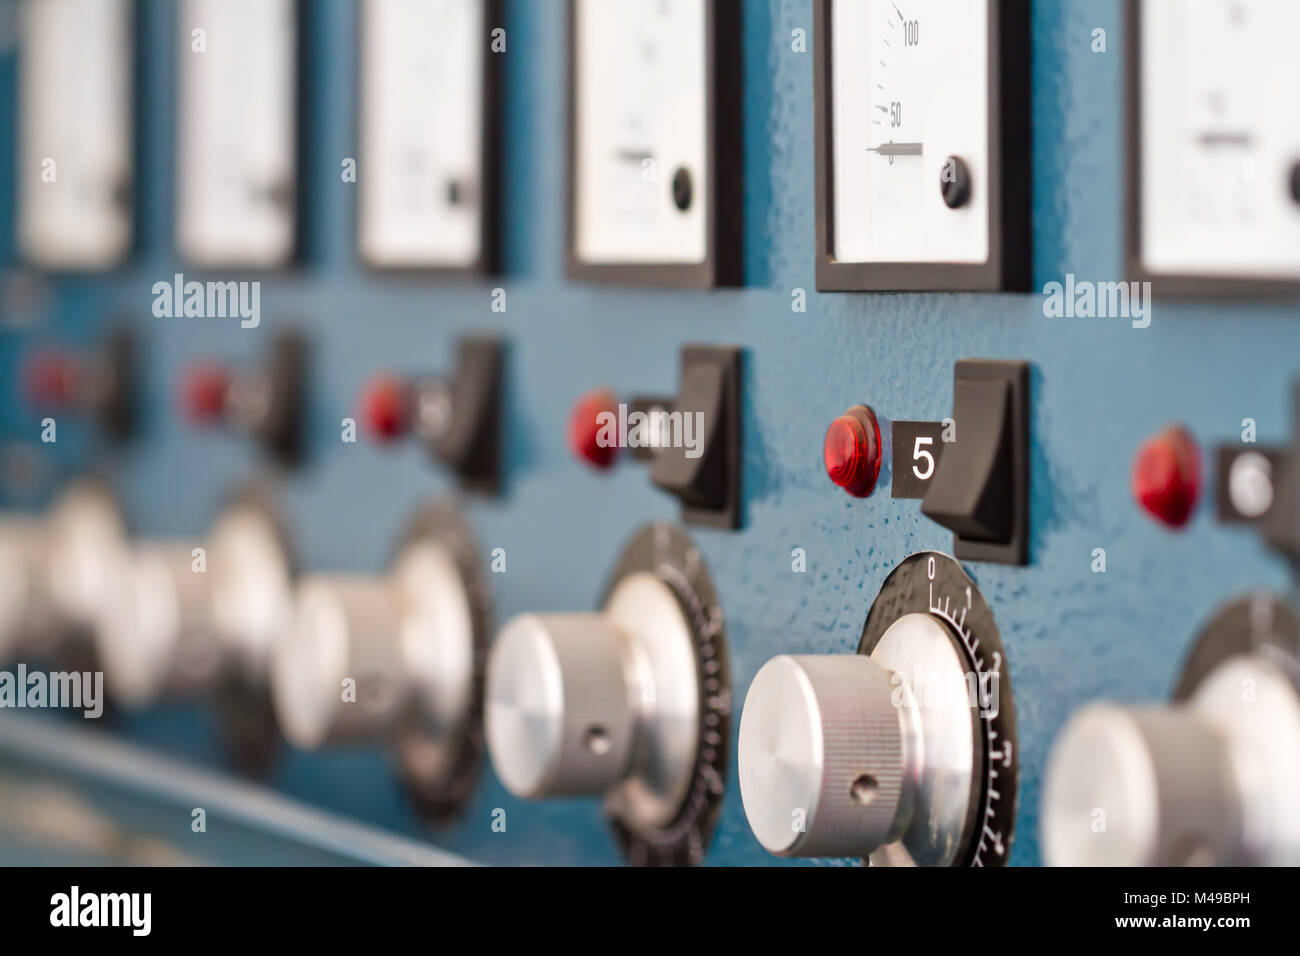 Instrument Panel Stock Photos & Instrument Panel Stock Images - Page